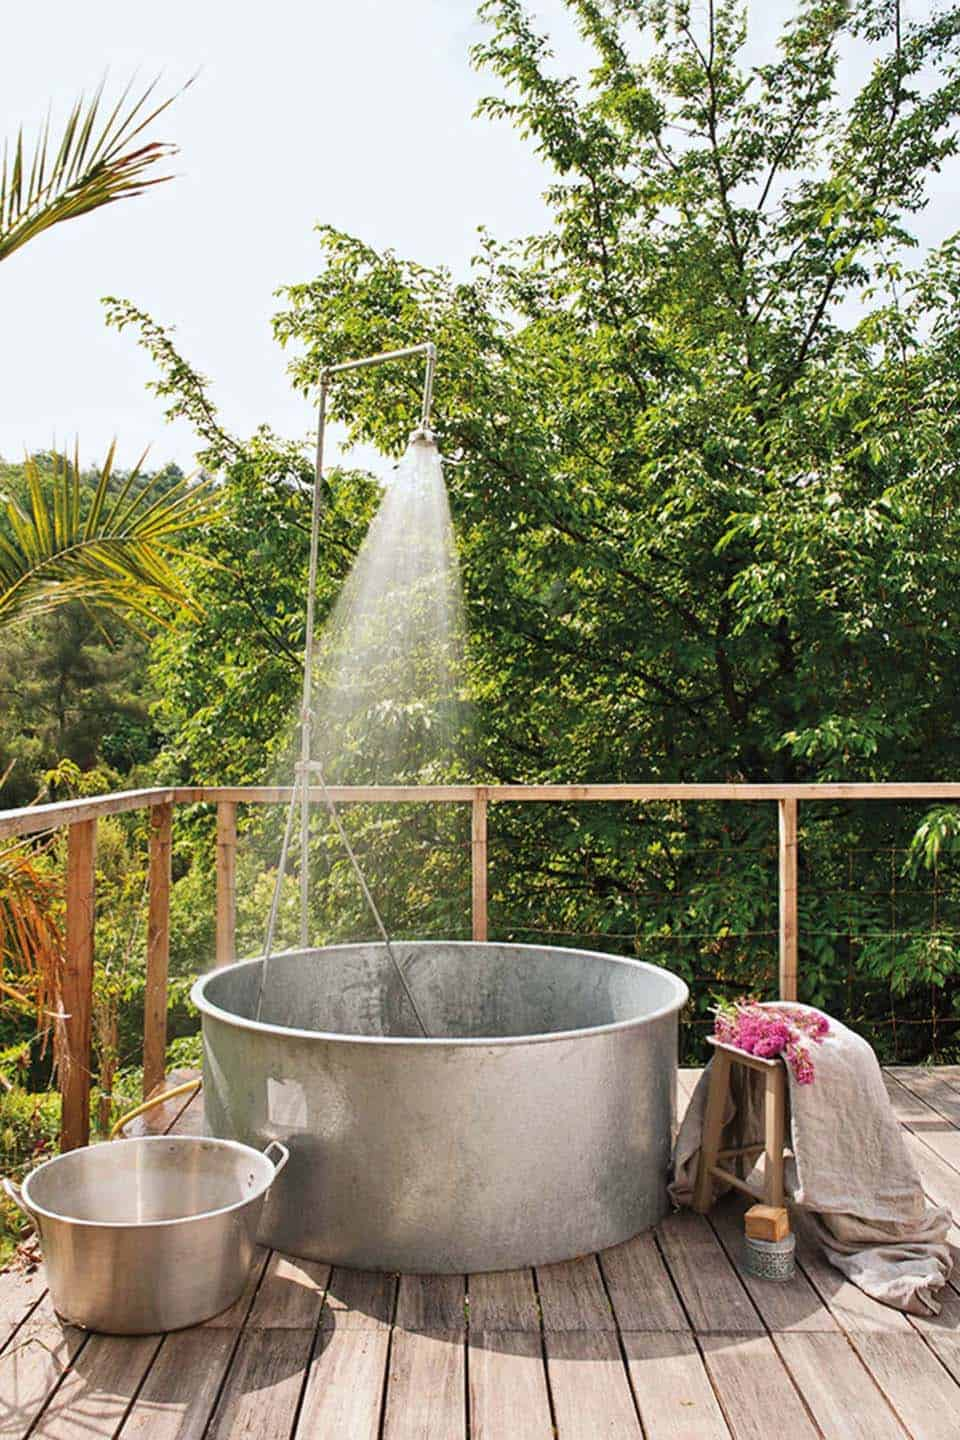 Outdoor Shower Design Ideas-17-1 Kindesign